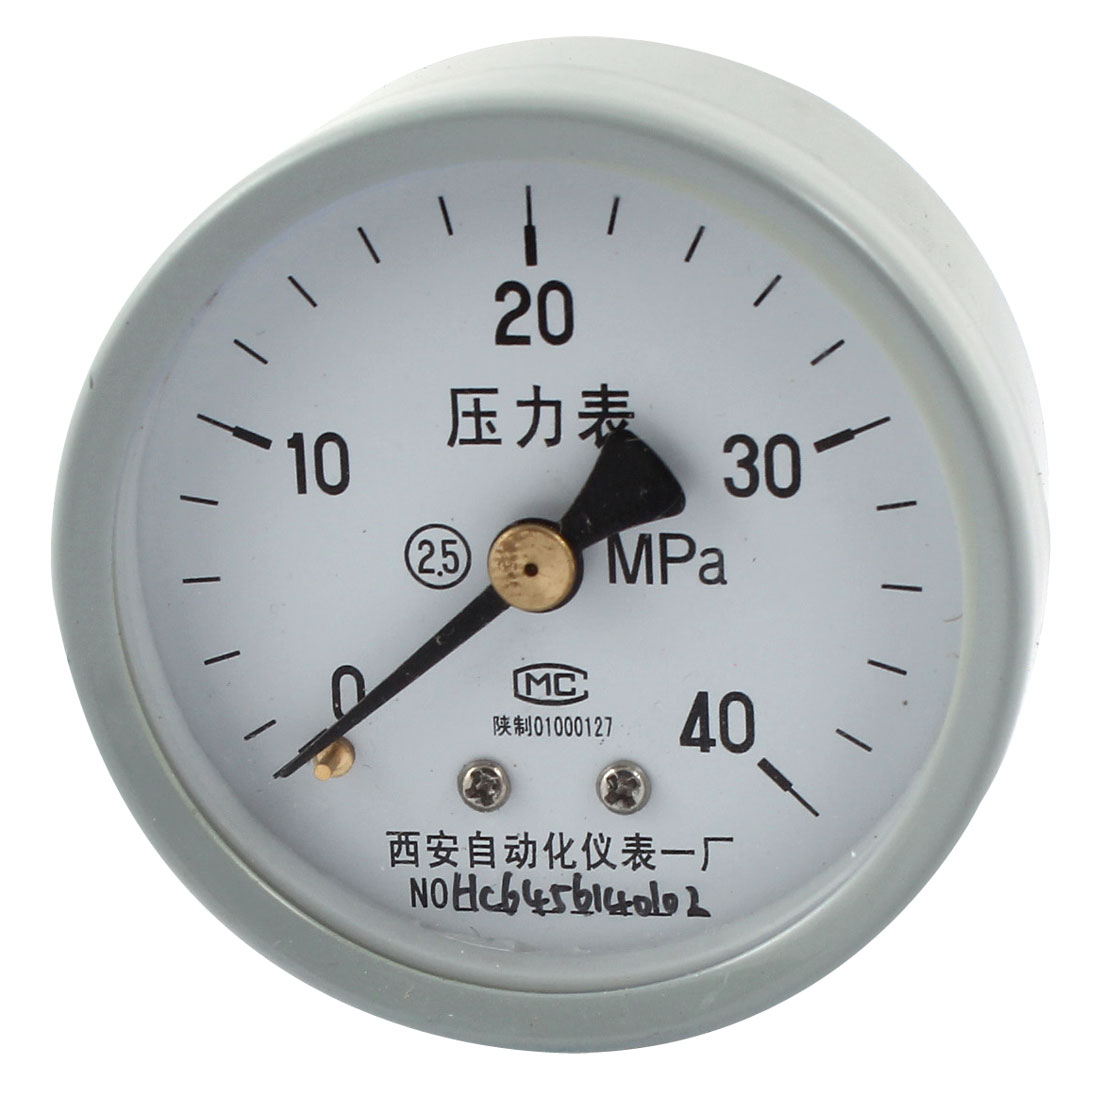 1/4PT Male Threaded 0-40Mpa Pneumatic Air Pressure Measuring Gauge Light Gray